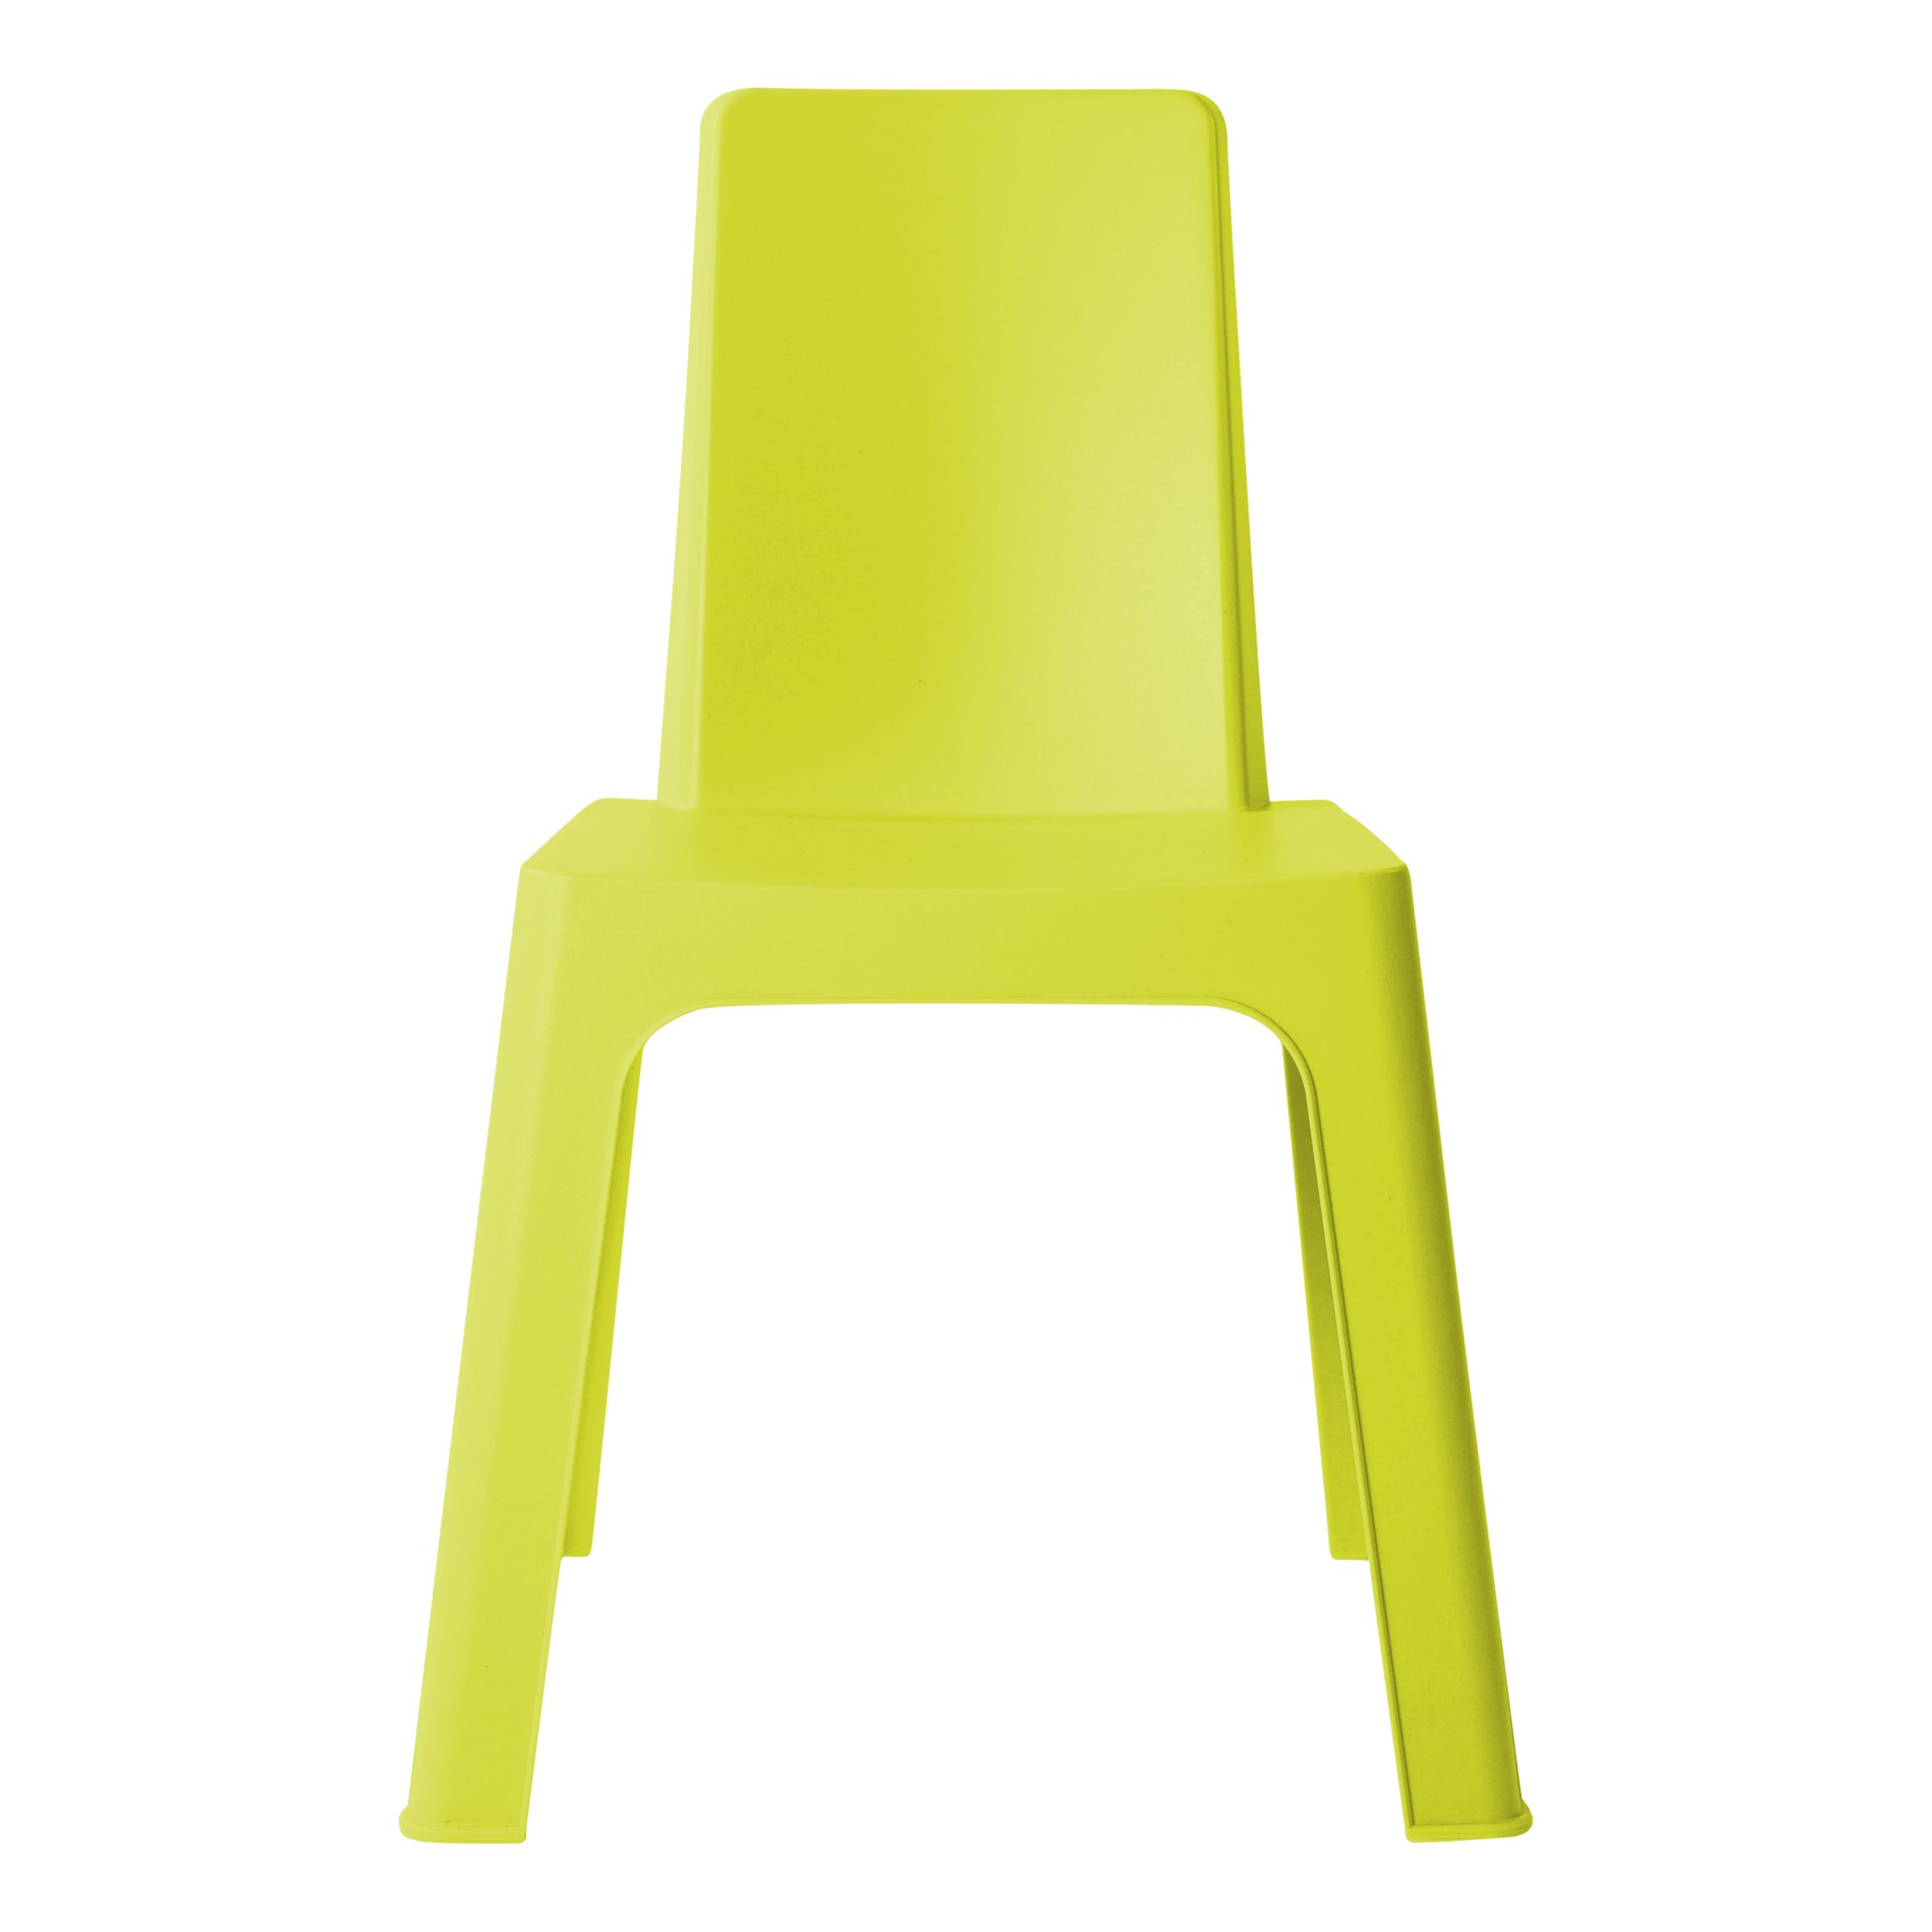 Resol Children's Julieta Chair, Lime Green